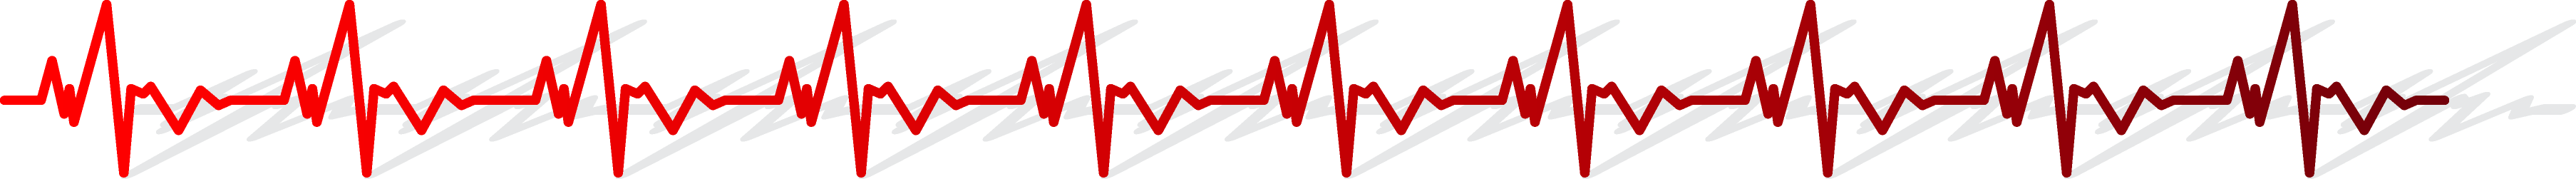 Heart rate monitor clipart